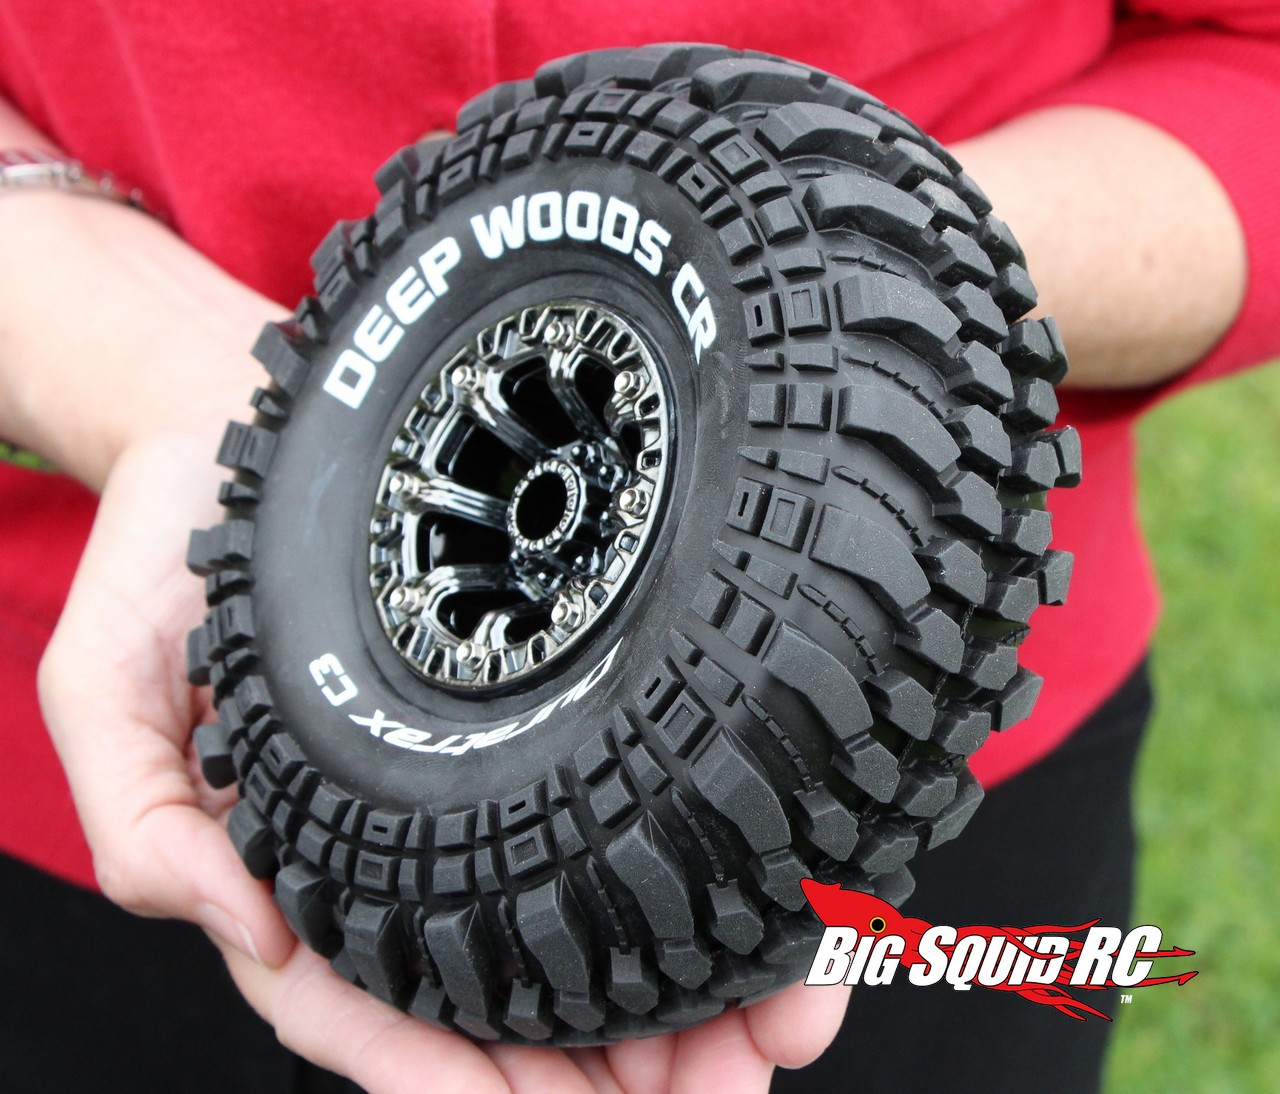 Punch Buggy Car >> New Tires Coming Soon From Duratrax « Big Squid RC – RC Car and Truck News, Reviews, Videos, and ...